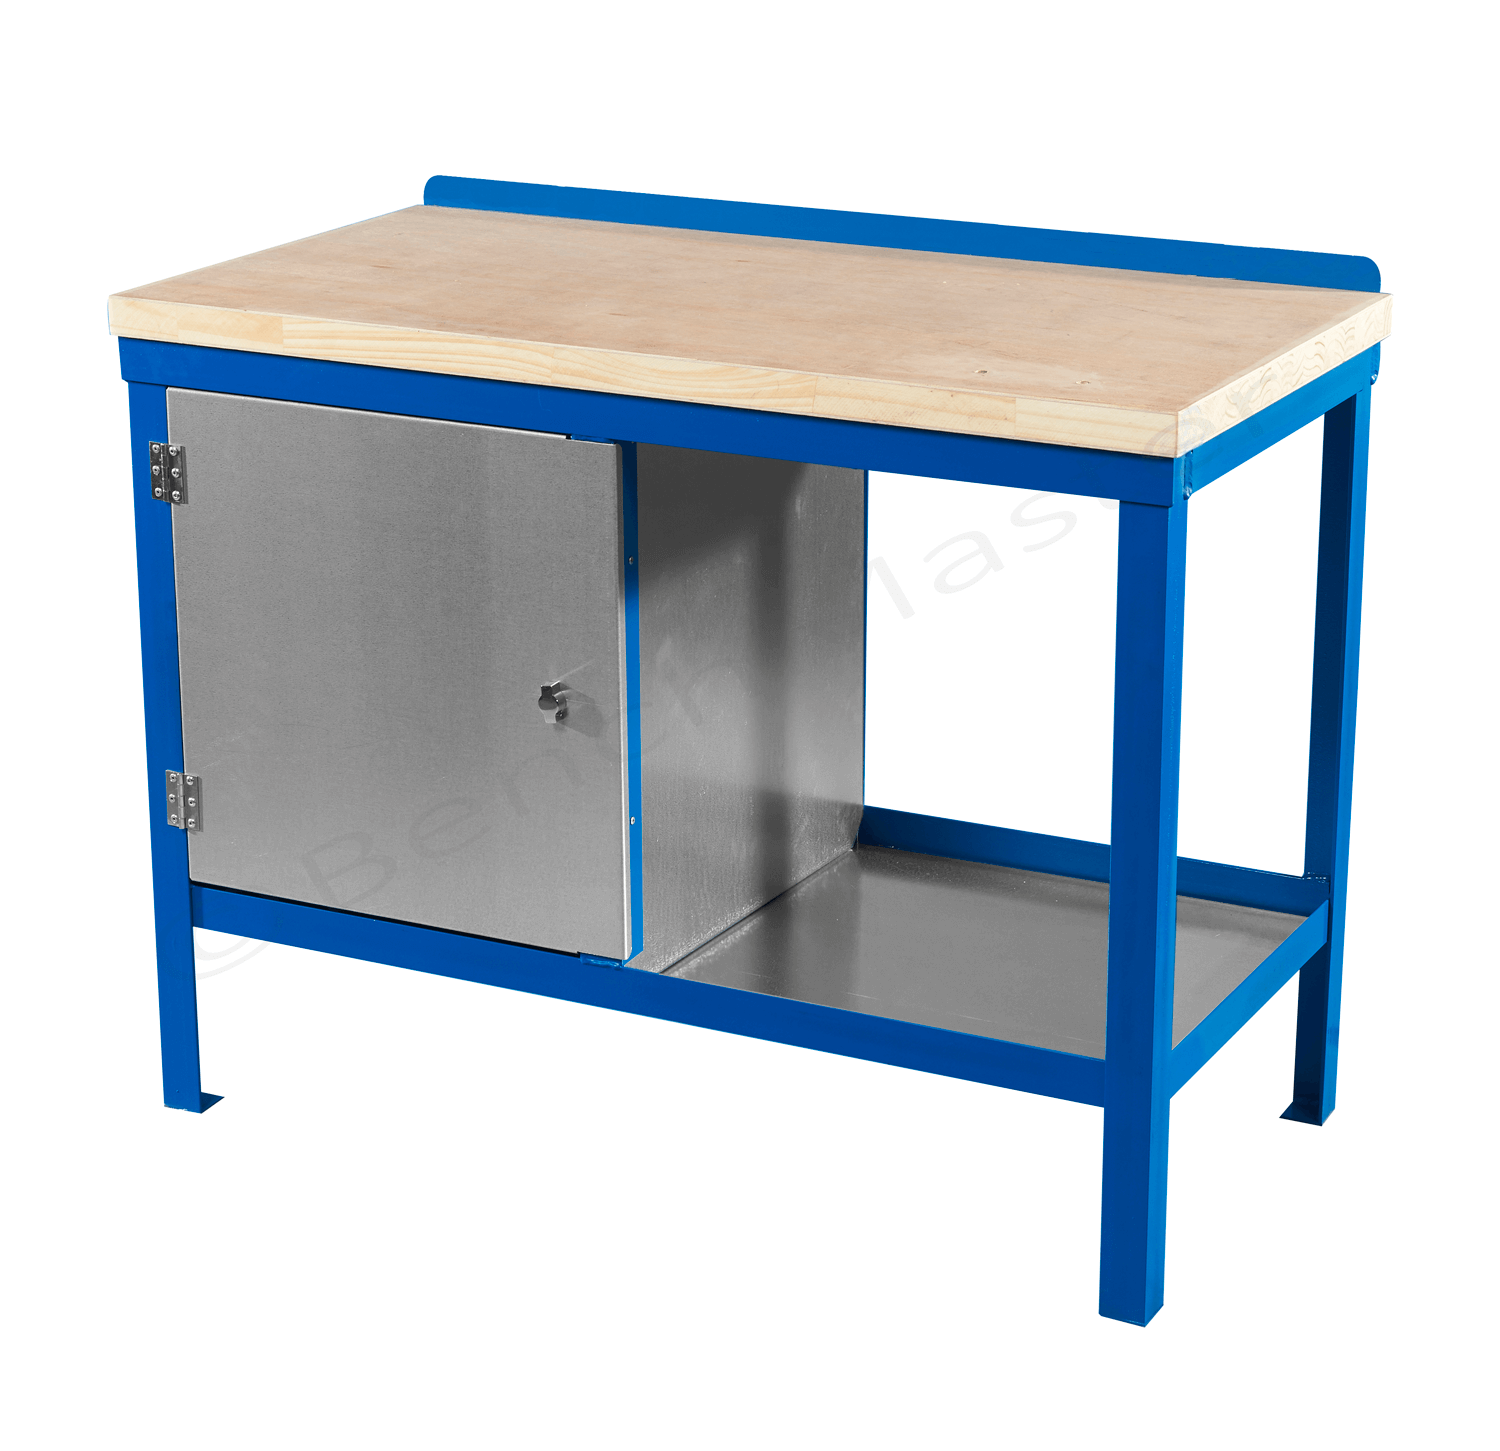 Institutional Heavy Duty Industrial Workbenches Benchmaster Uk